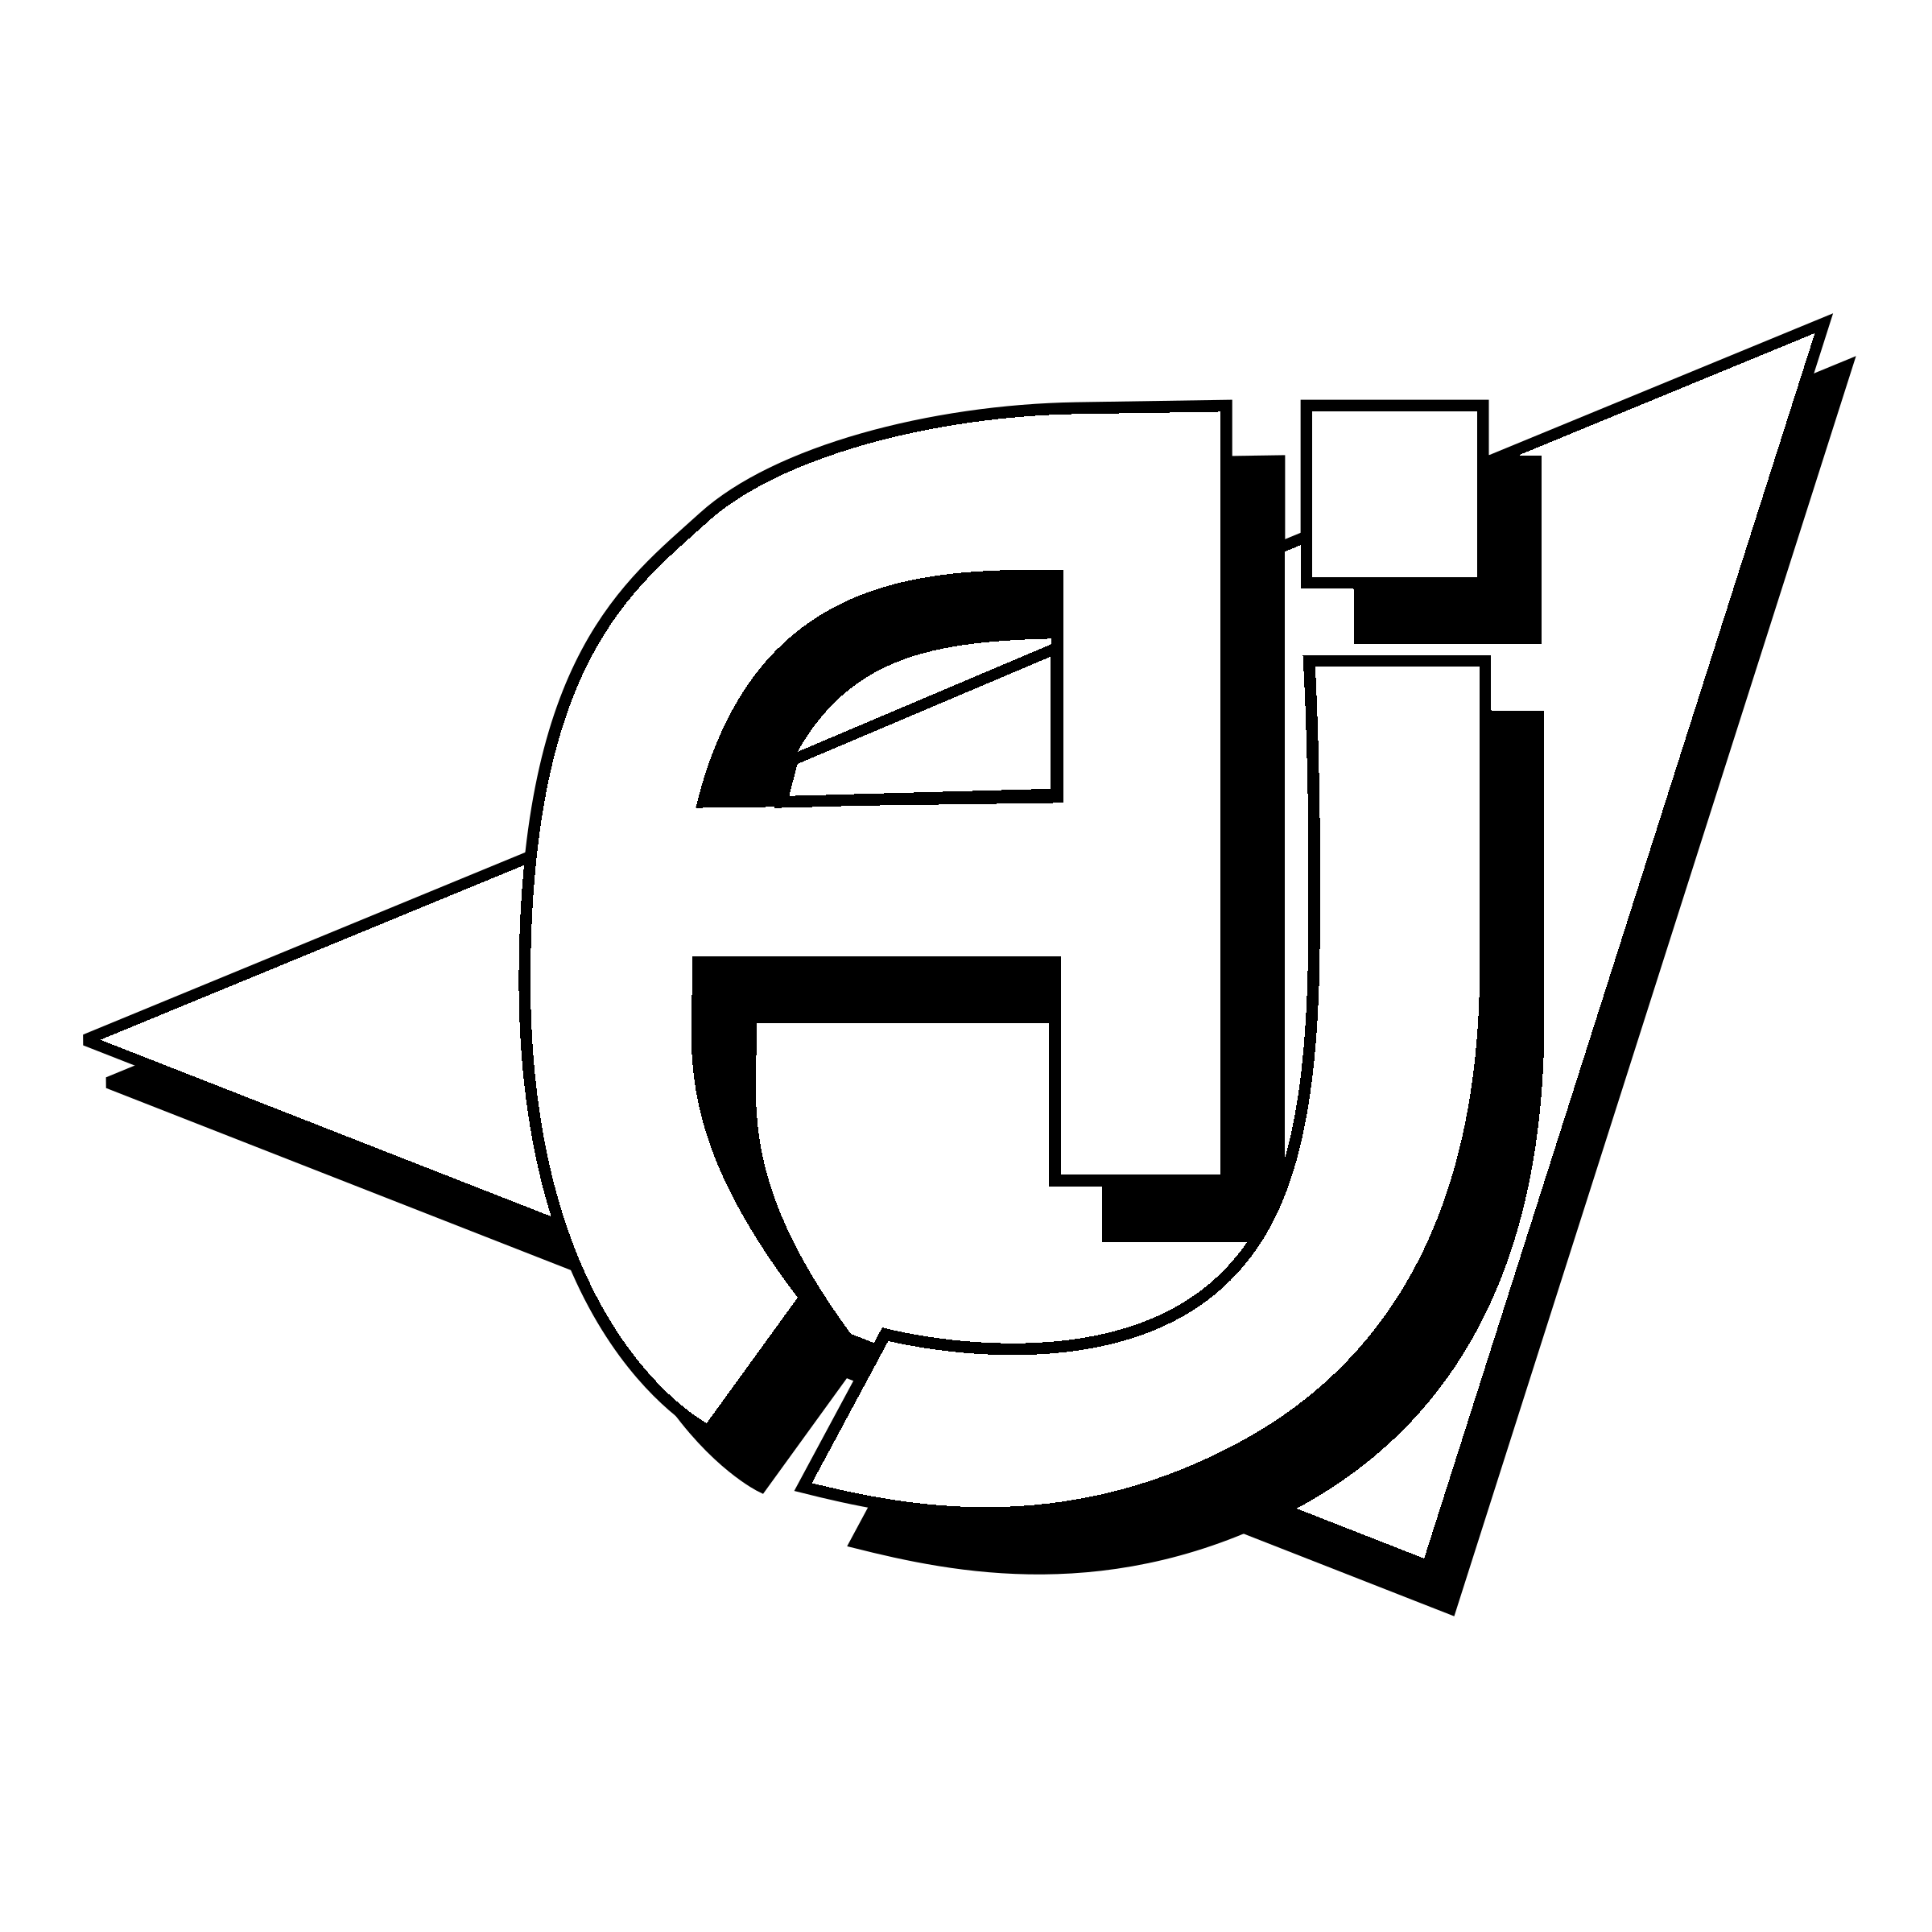 AJ 01 Logo PNG Transparent & SVG Vector.